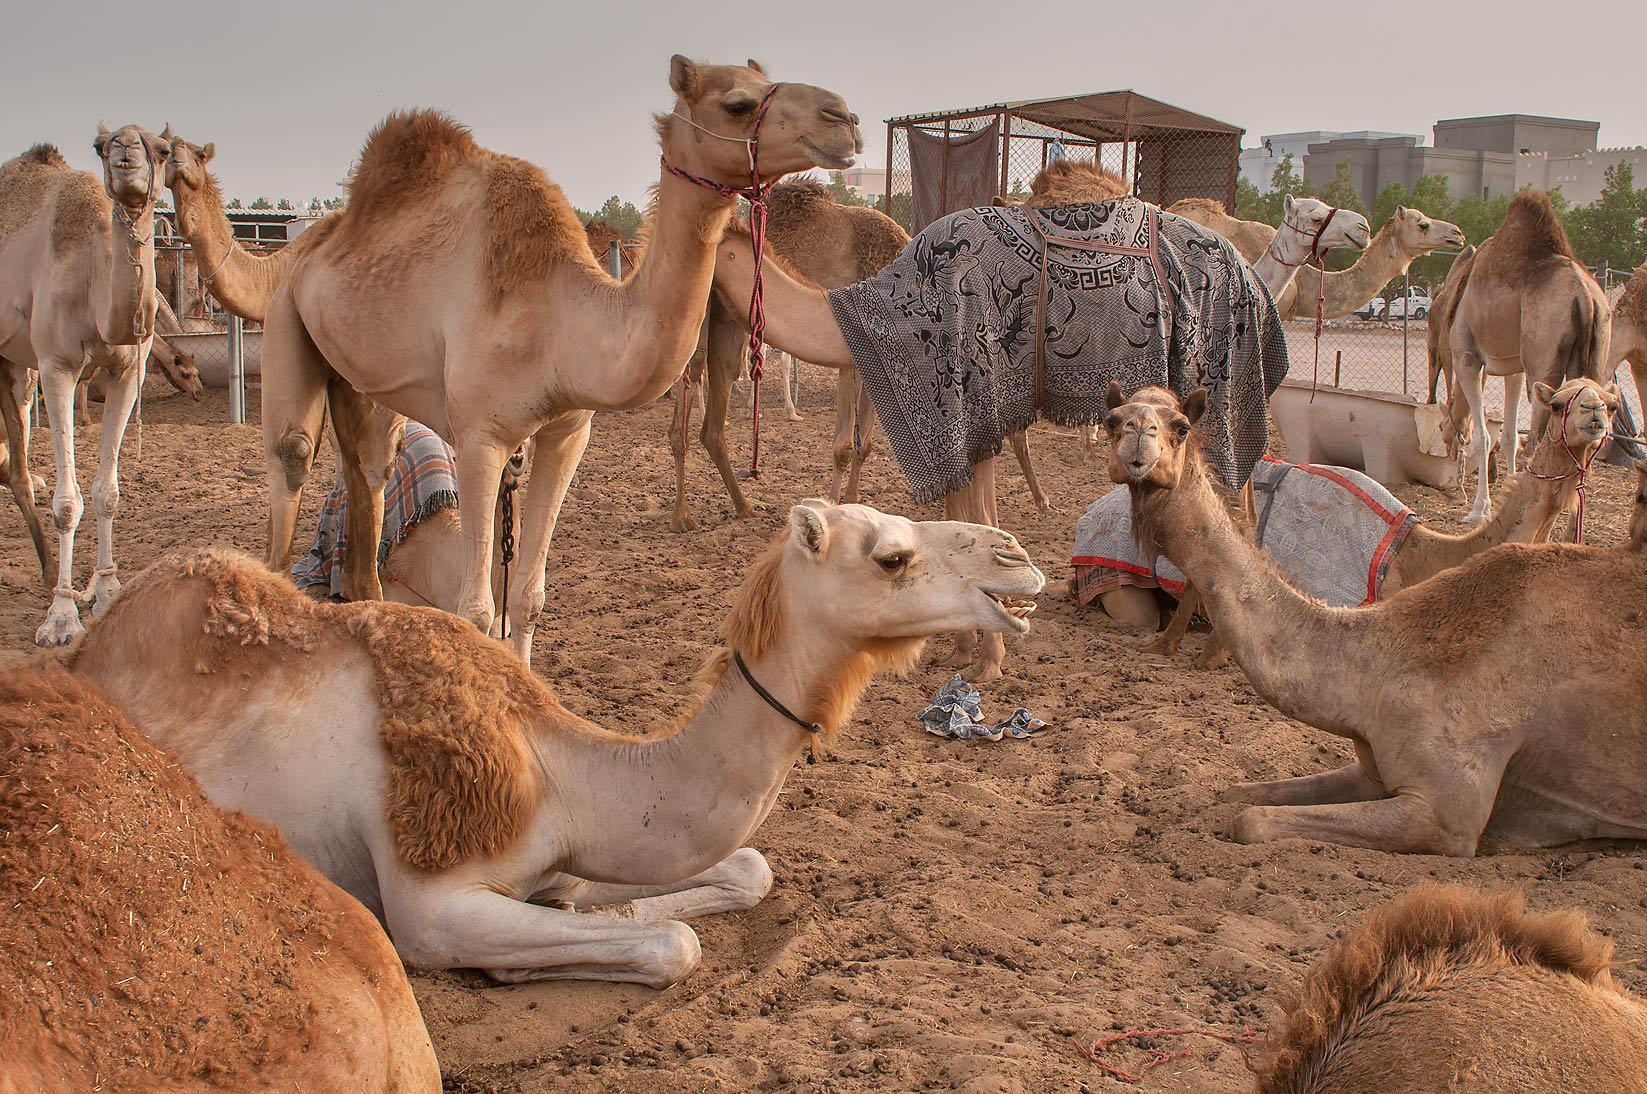 Group of sitting and standing camels in Livestock Market, Abu Hamour area. Doha, Qatar